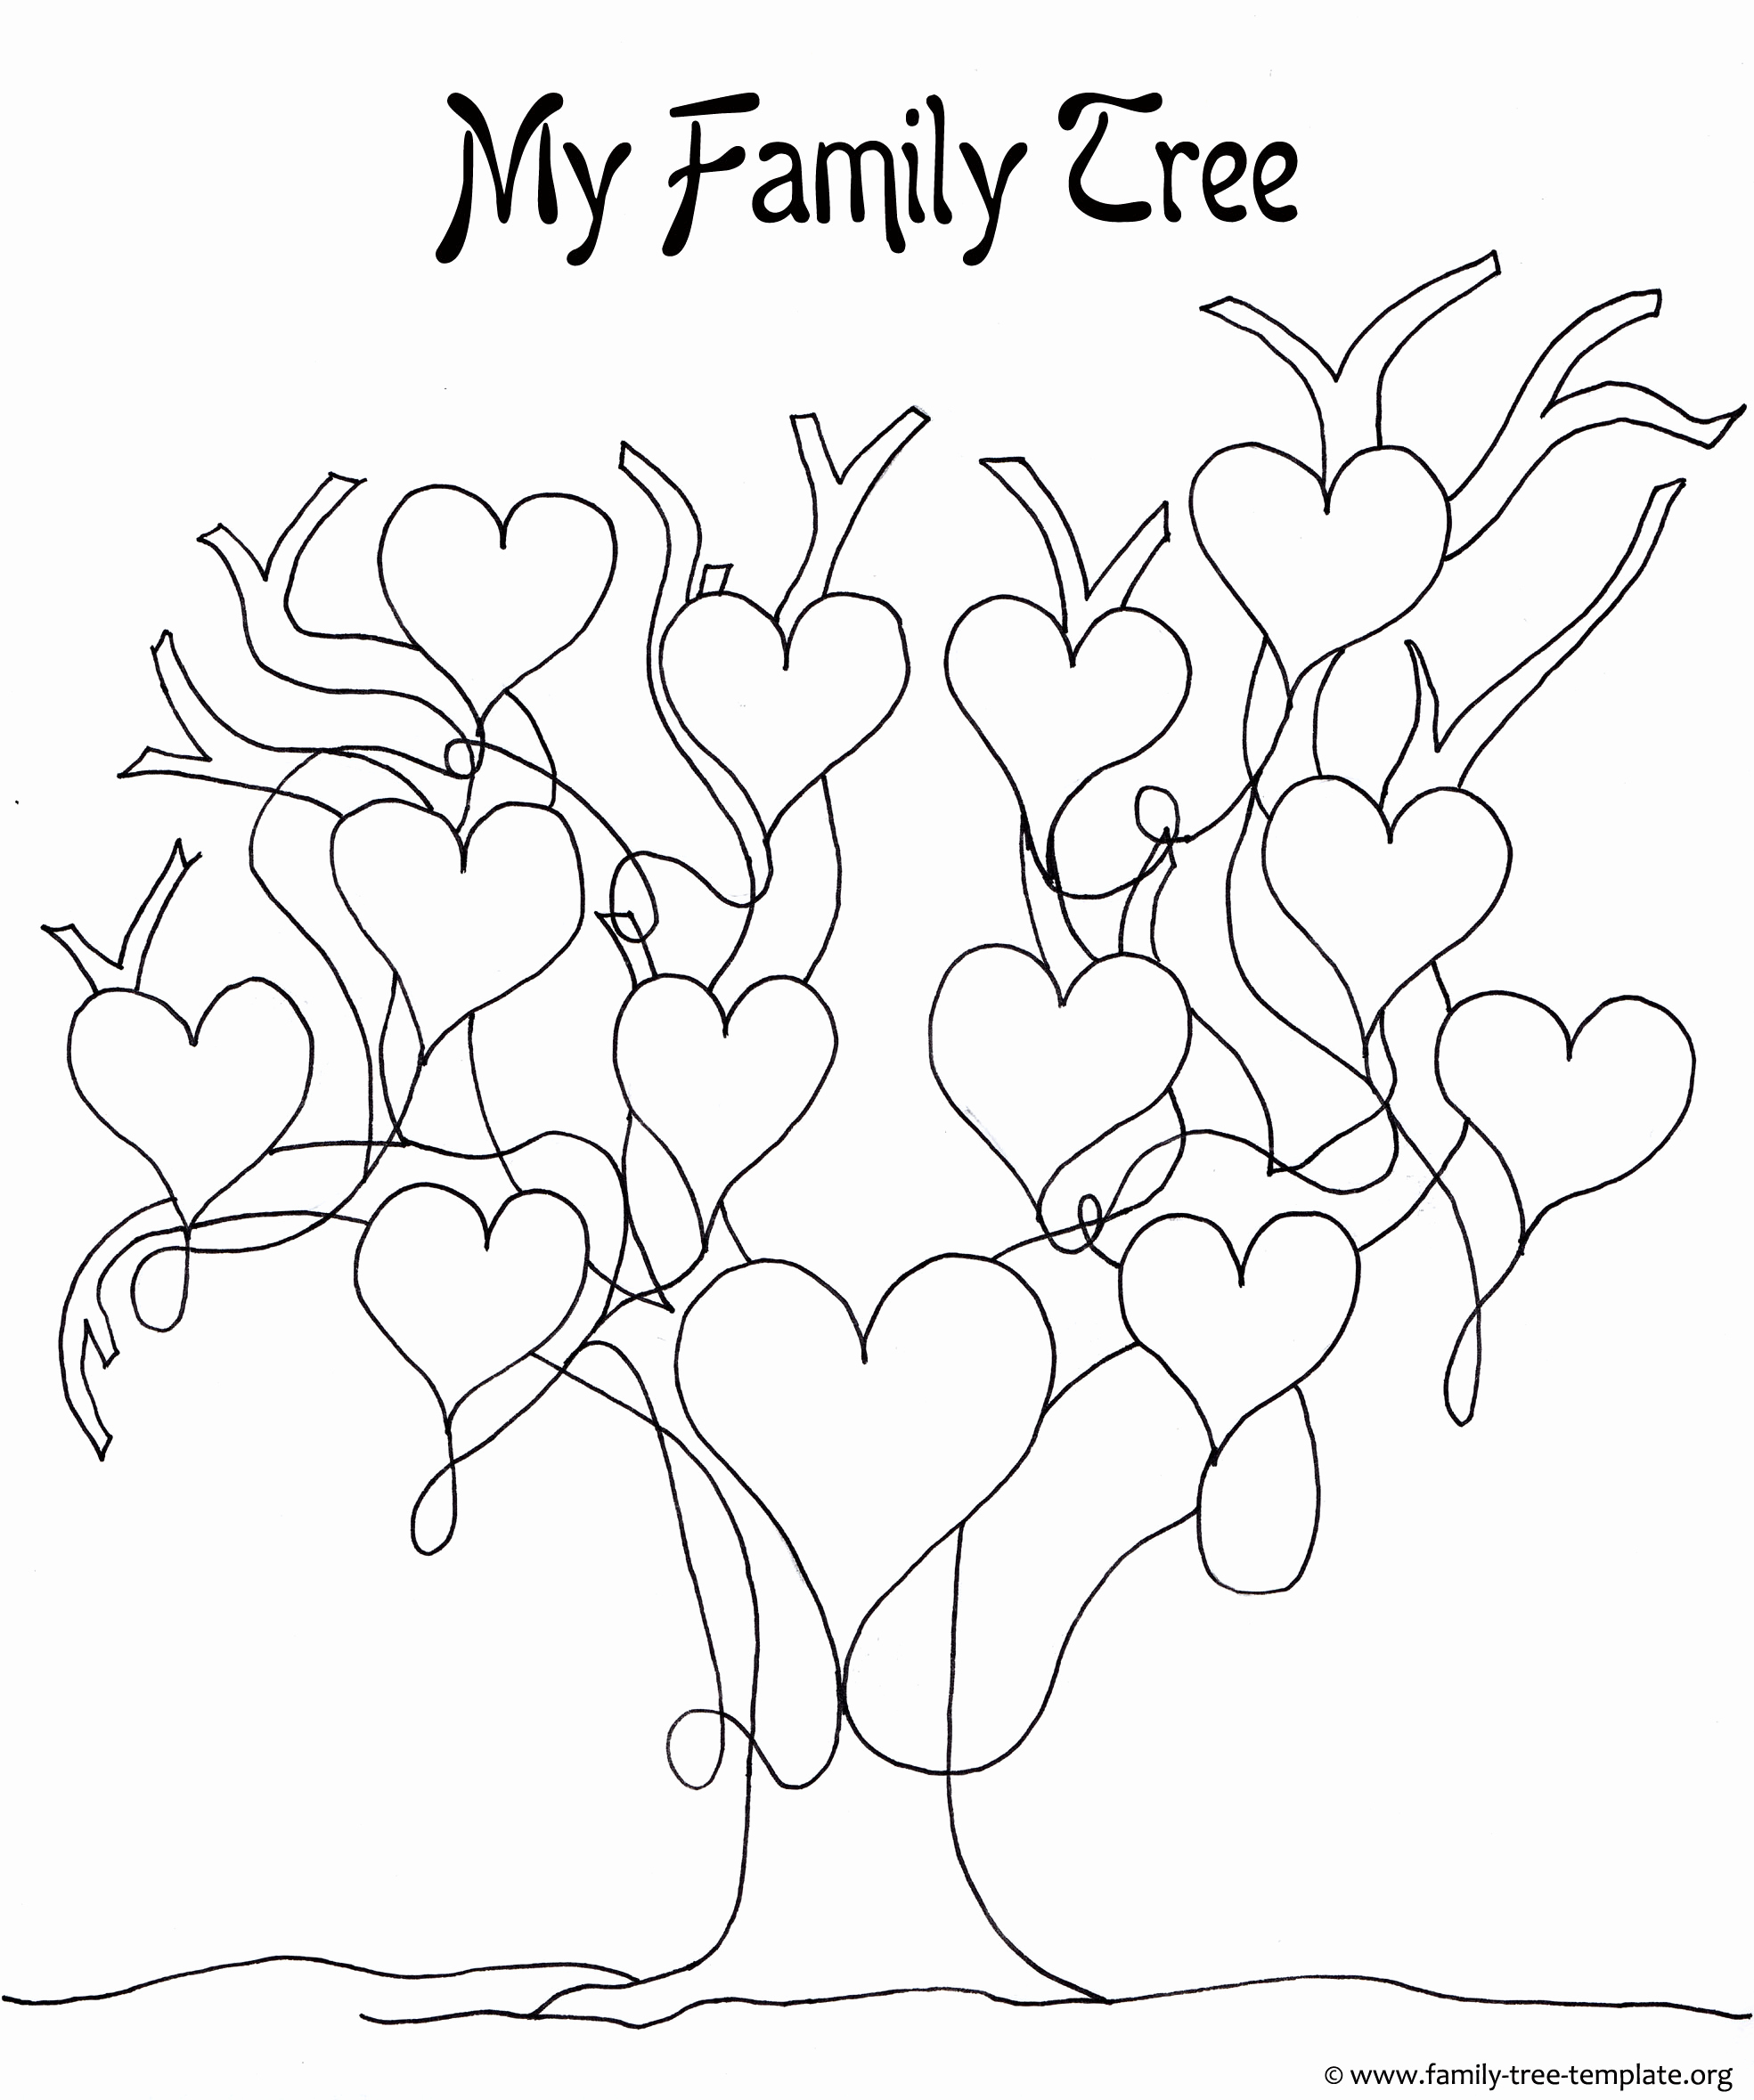 Free Printable Family Tree Lovely A Printable Blank Family Tree to Make Your Kids Genealogy